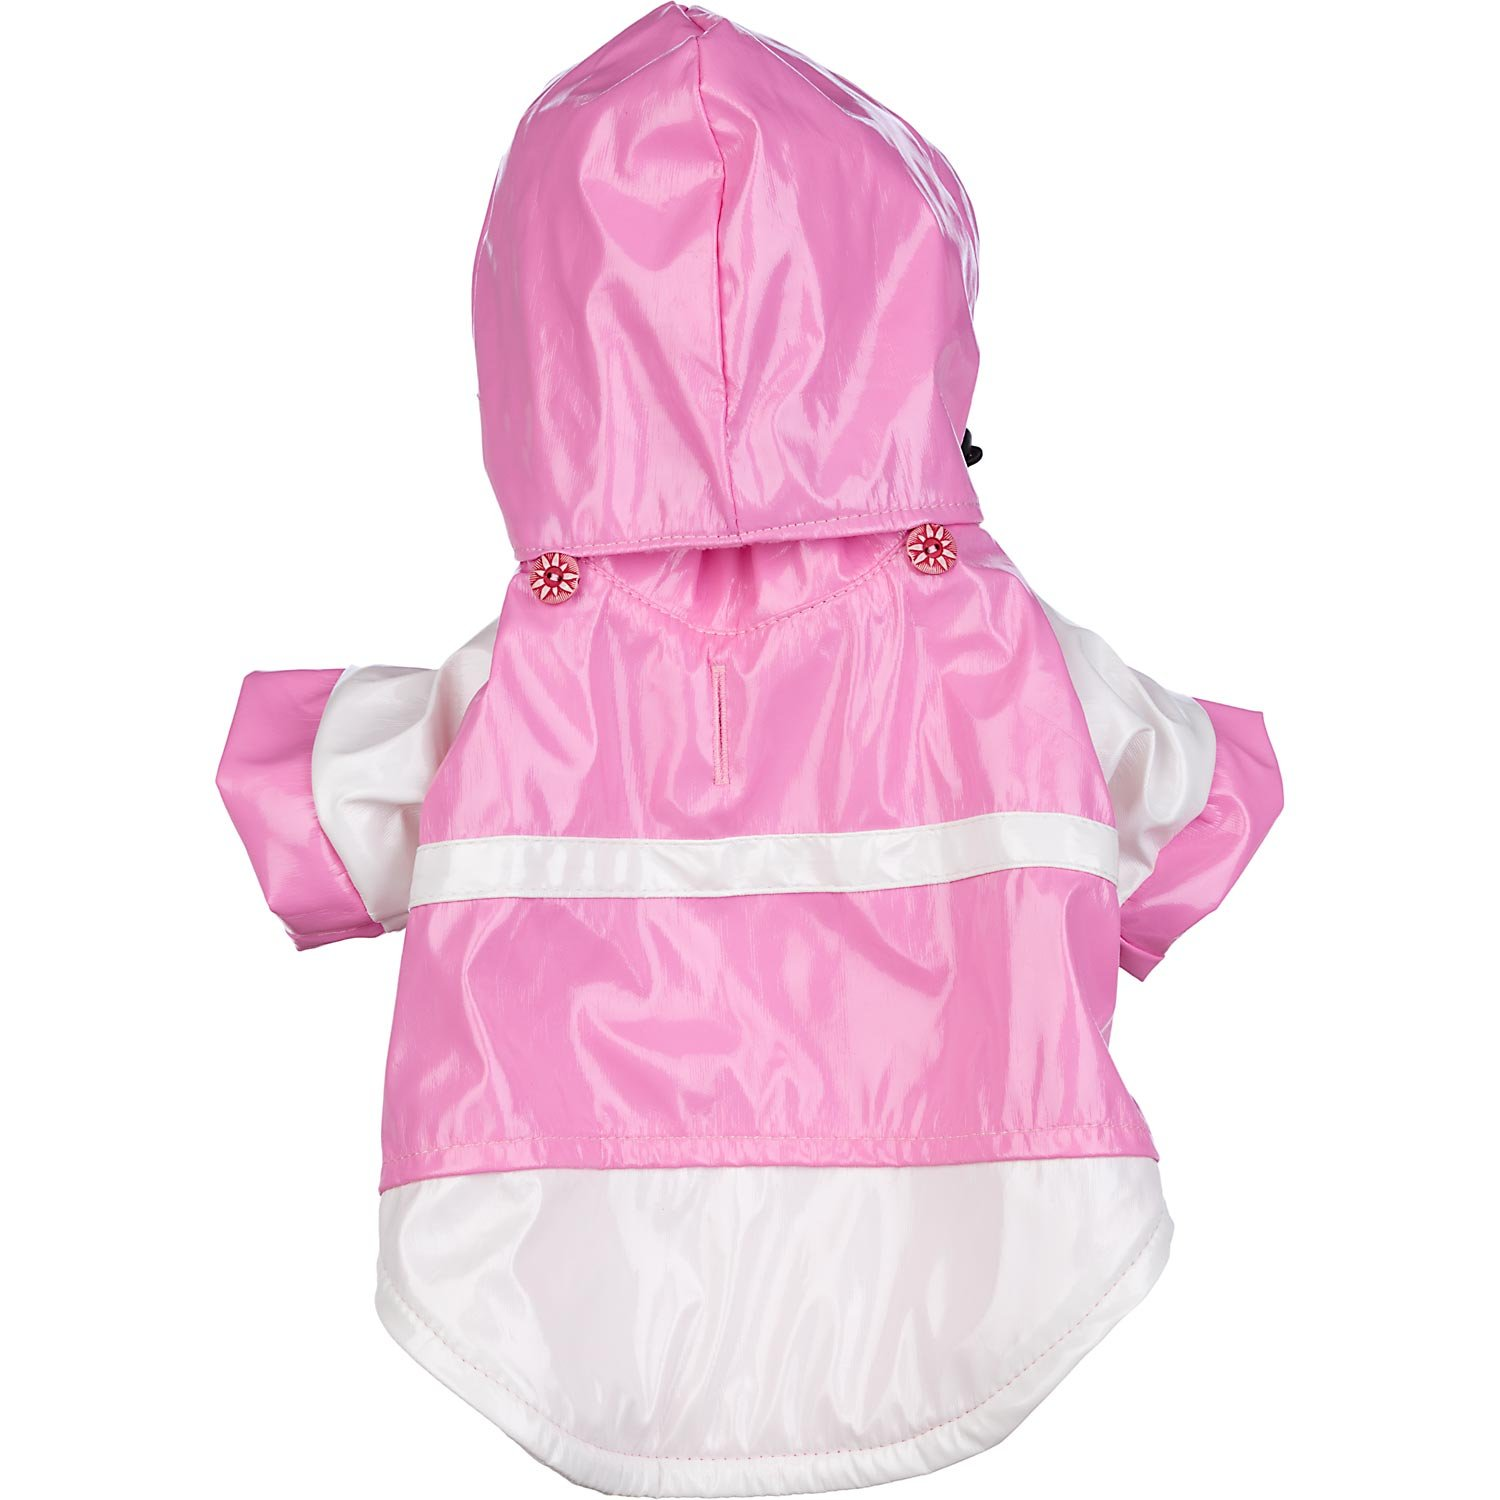 PVC Raincoat with Removable Hood Pink White Small